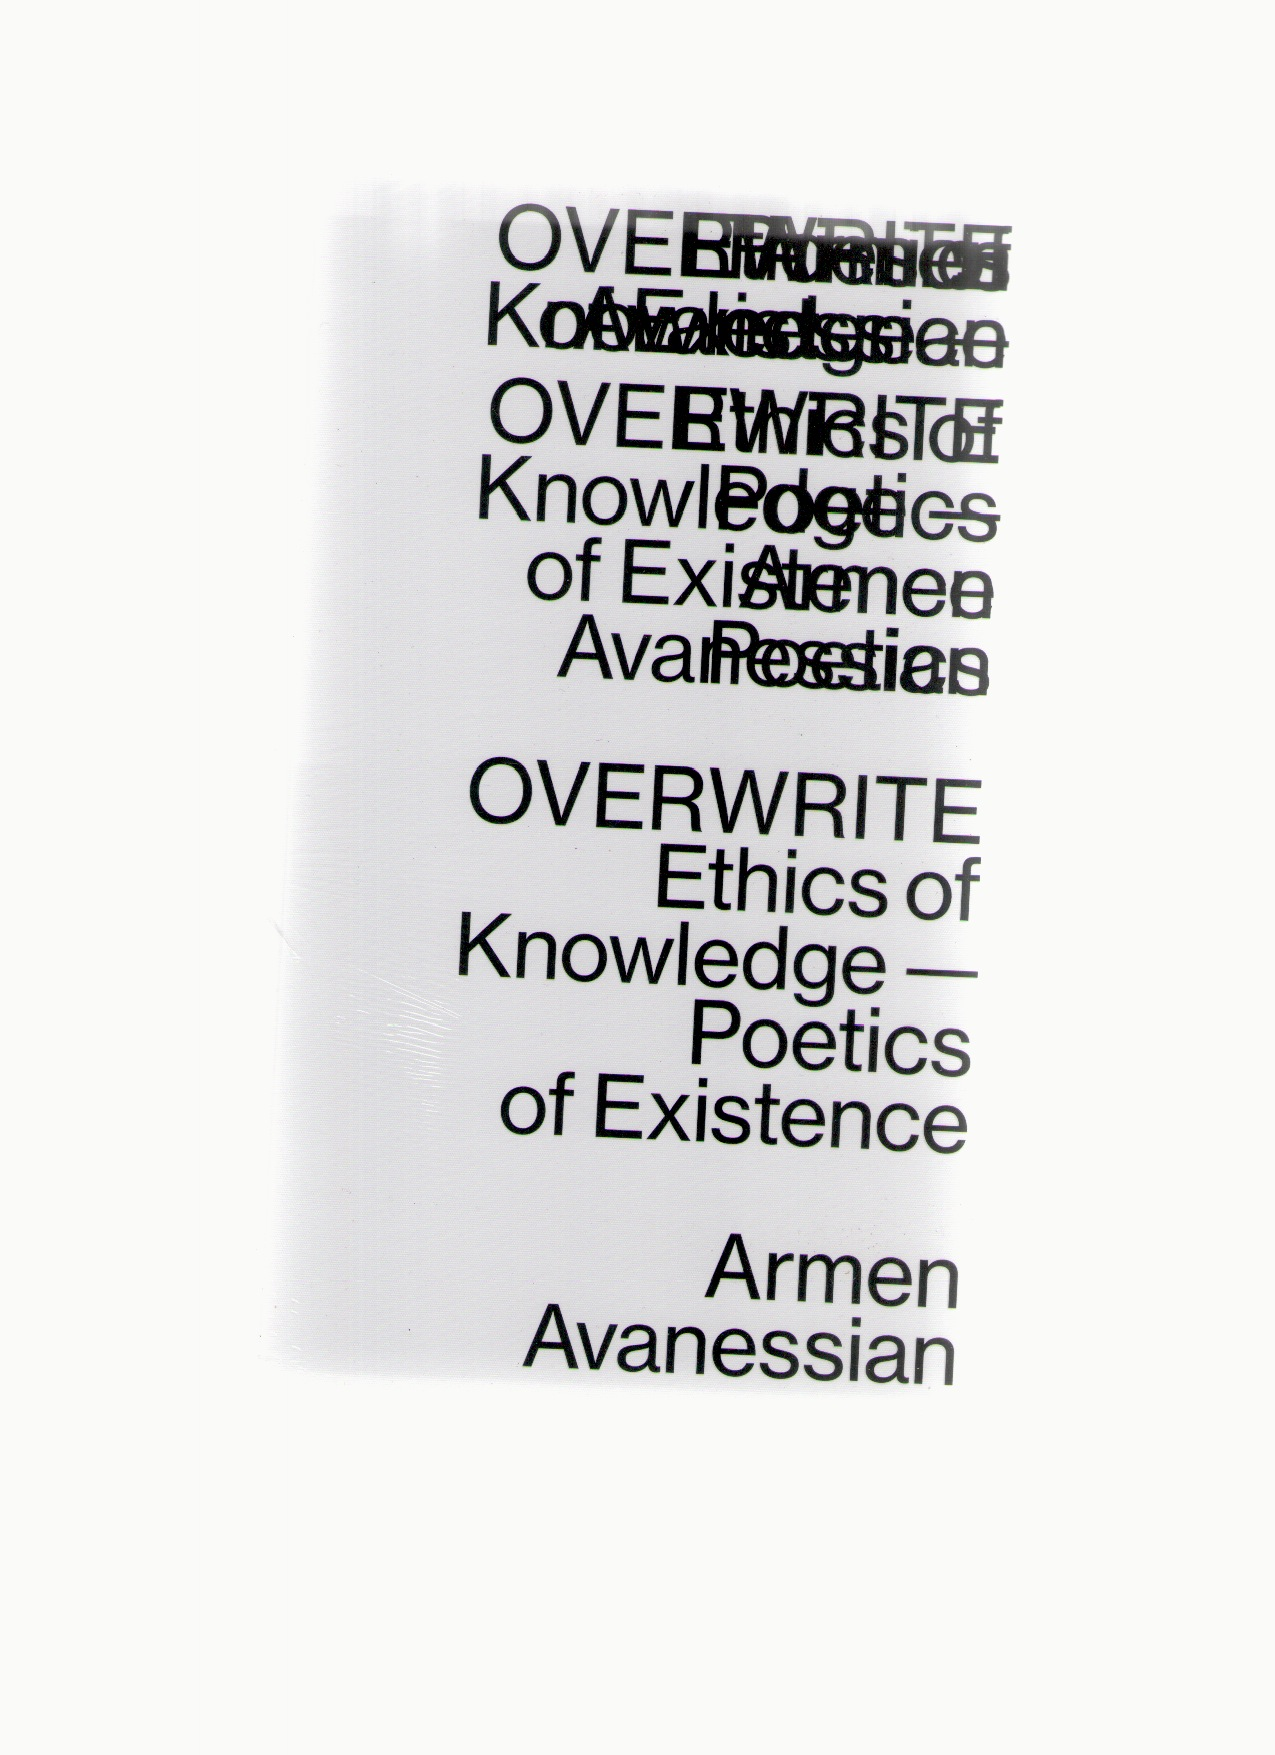 AVANESSIAN, Armen - Overwrite. Ethics of Knowledge - Poetics of Existence